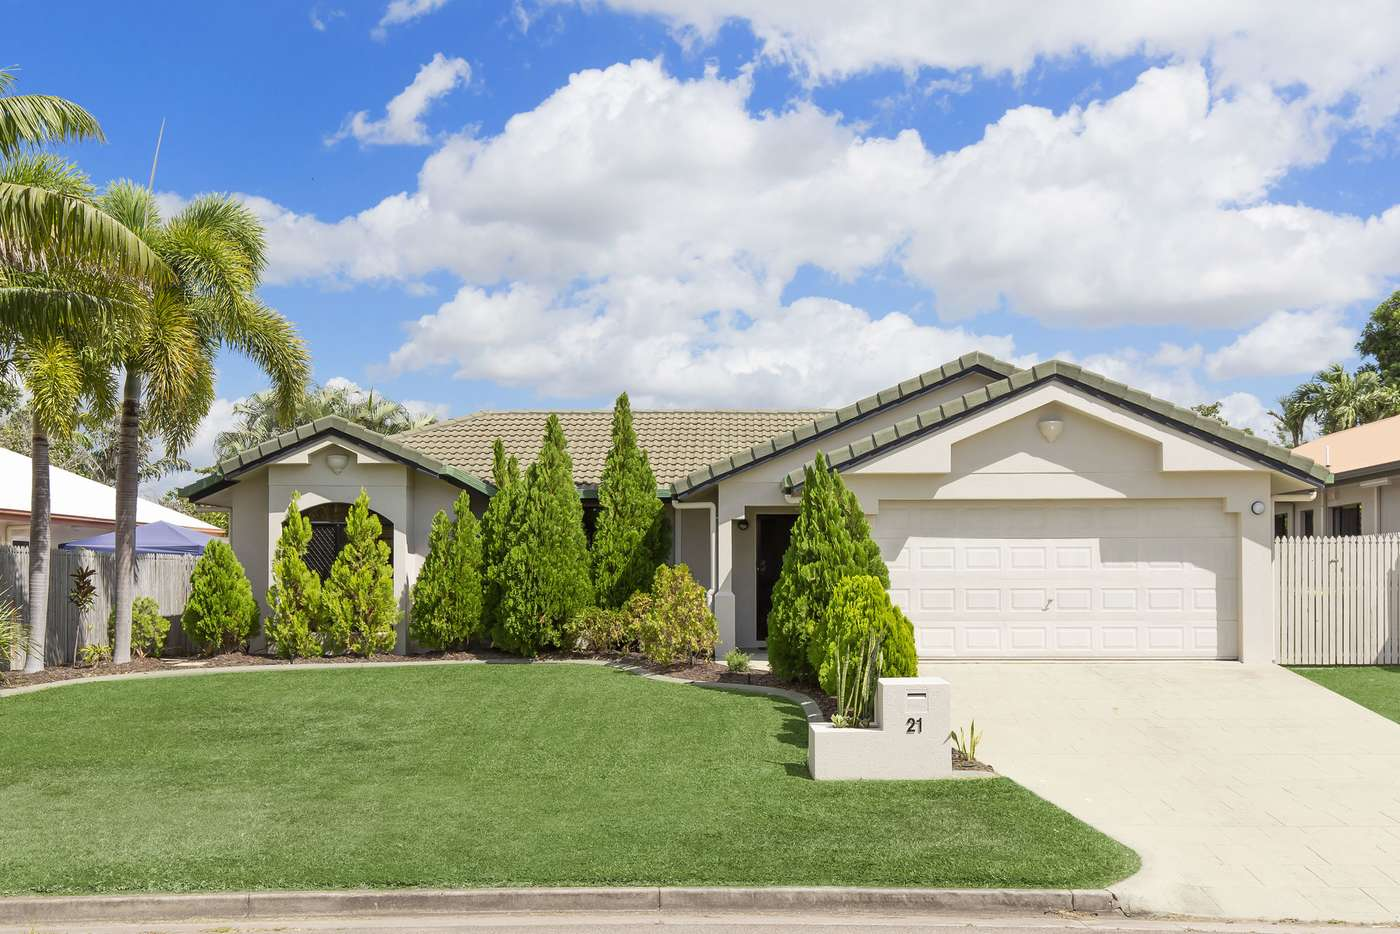 Main view of Homely house listing, 21 Woodbine Drive, Annandale QLD 4814